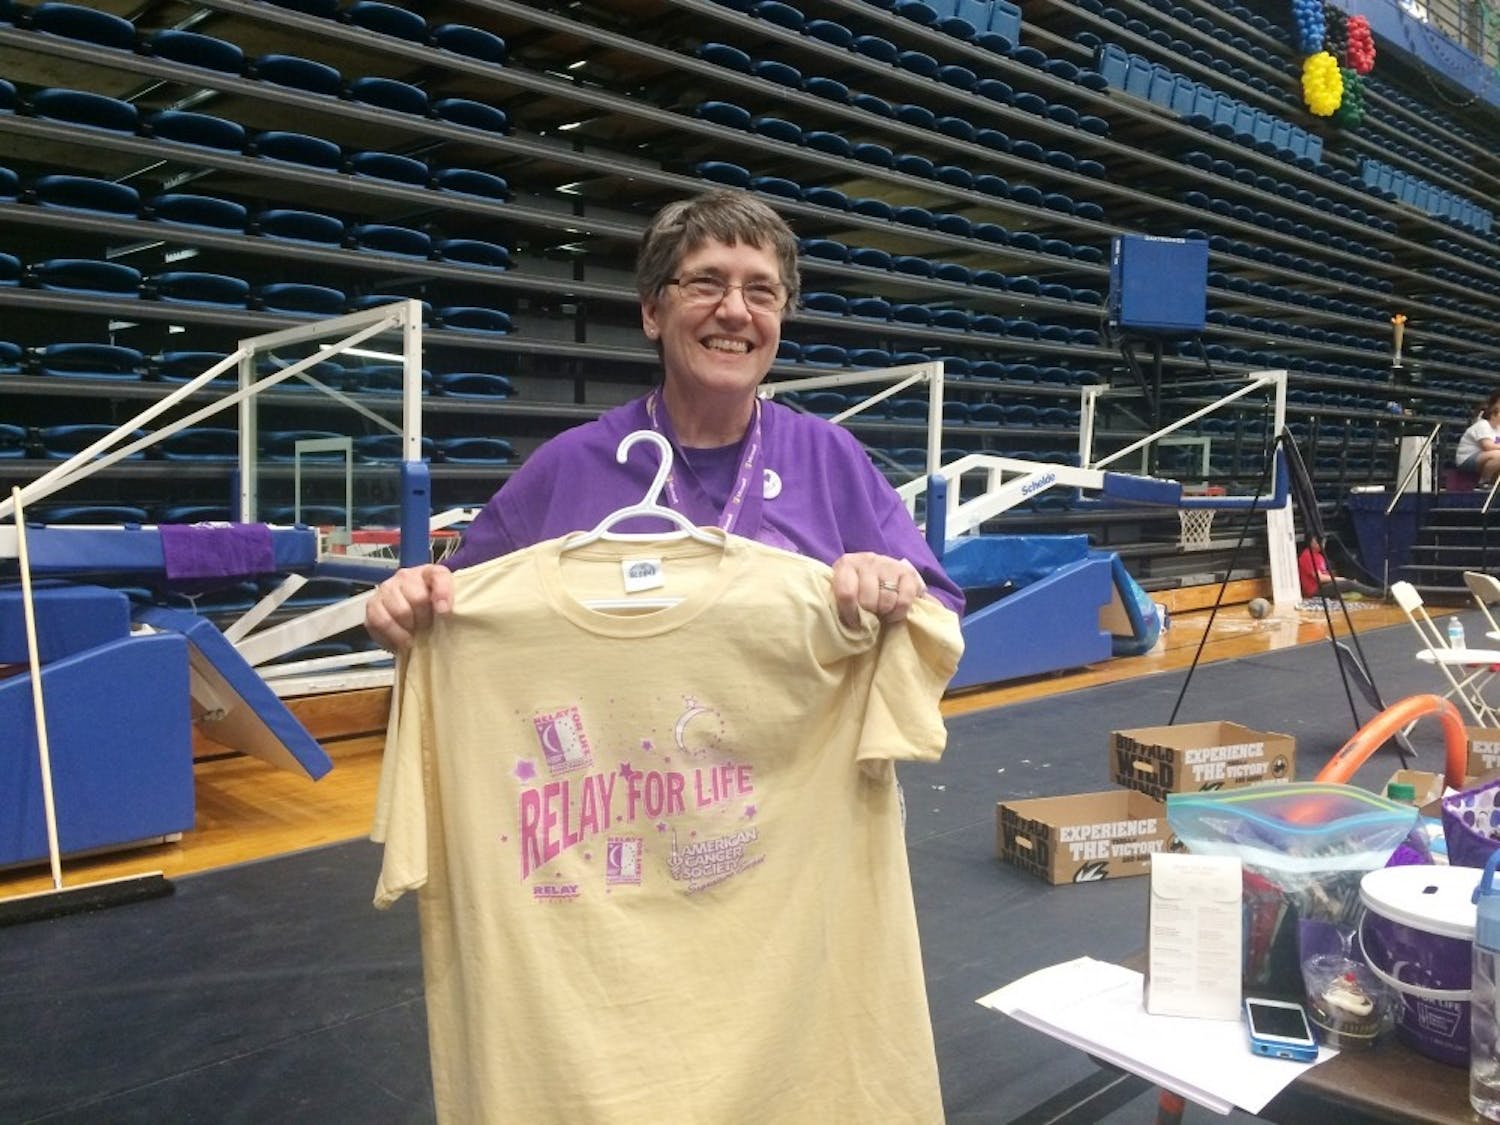 Survivor, teammate, committee member and honored guest Pricilla Snider displays the Relay for Life t-shirt from 1997.